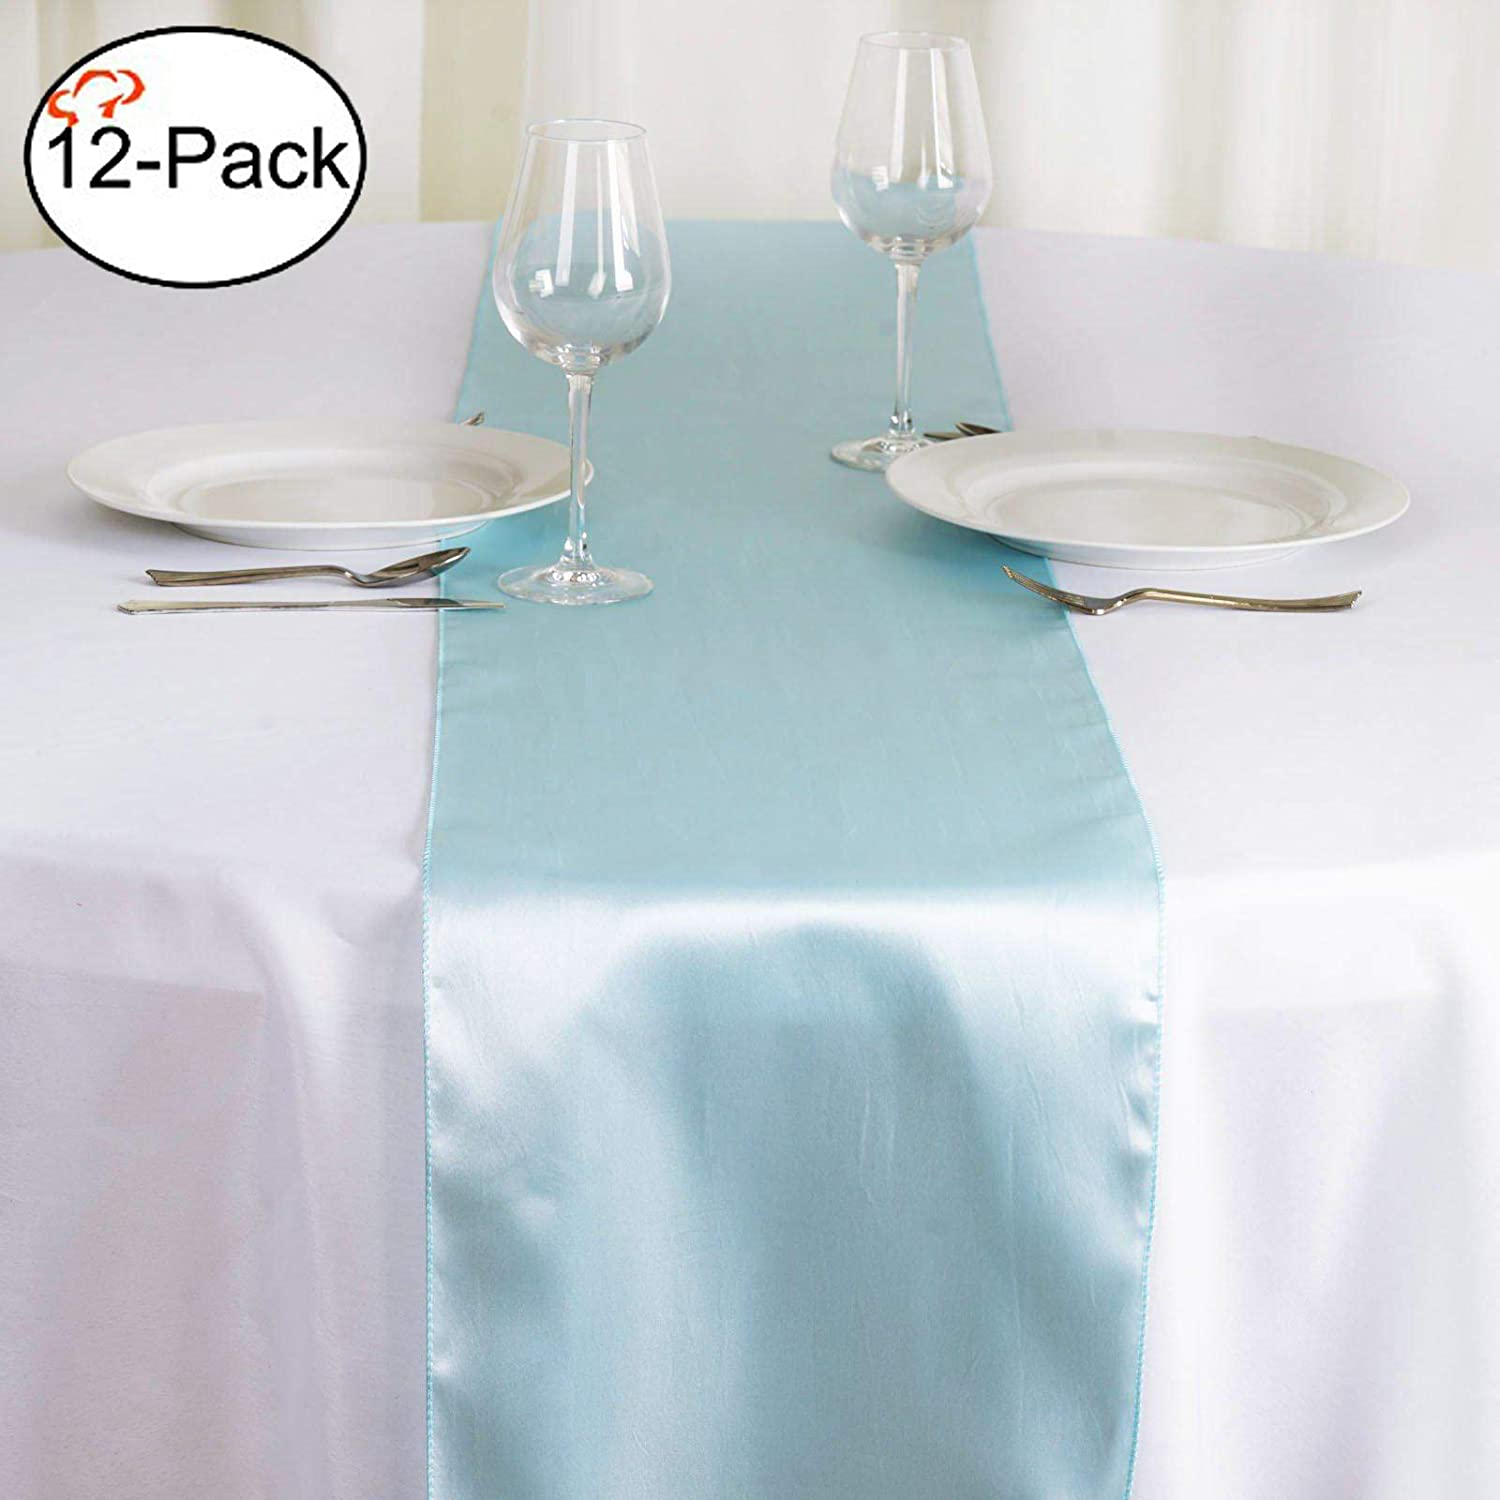 Table Runners fit Rectange and Round Table Decorations for Birthday Parties Tiger Chef 12-Pack Burgundy 12 x 108 inches Long Satin Table Runner for Wedding Banquets Graduations,